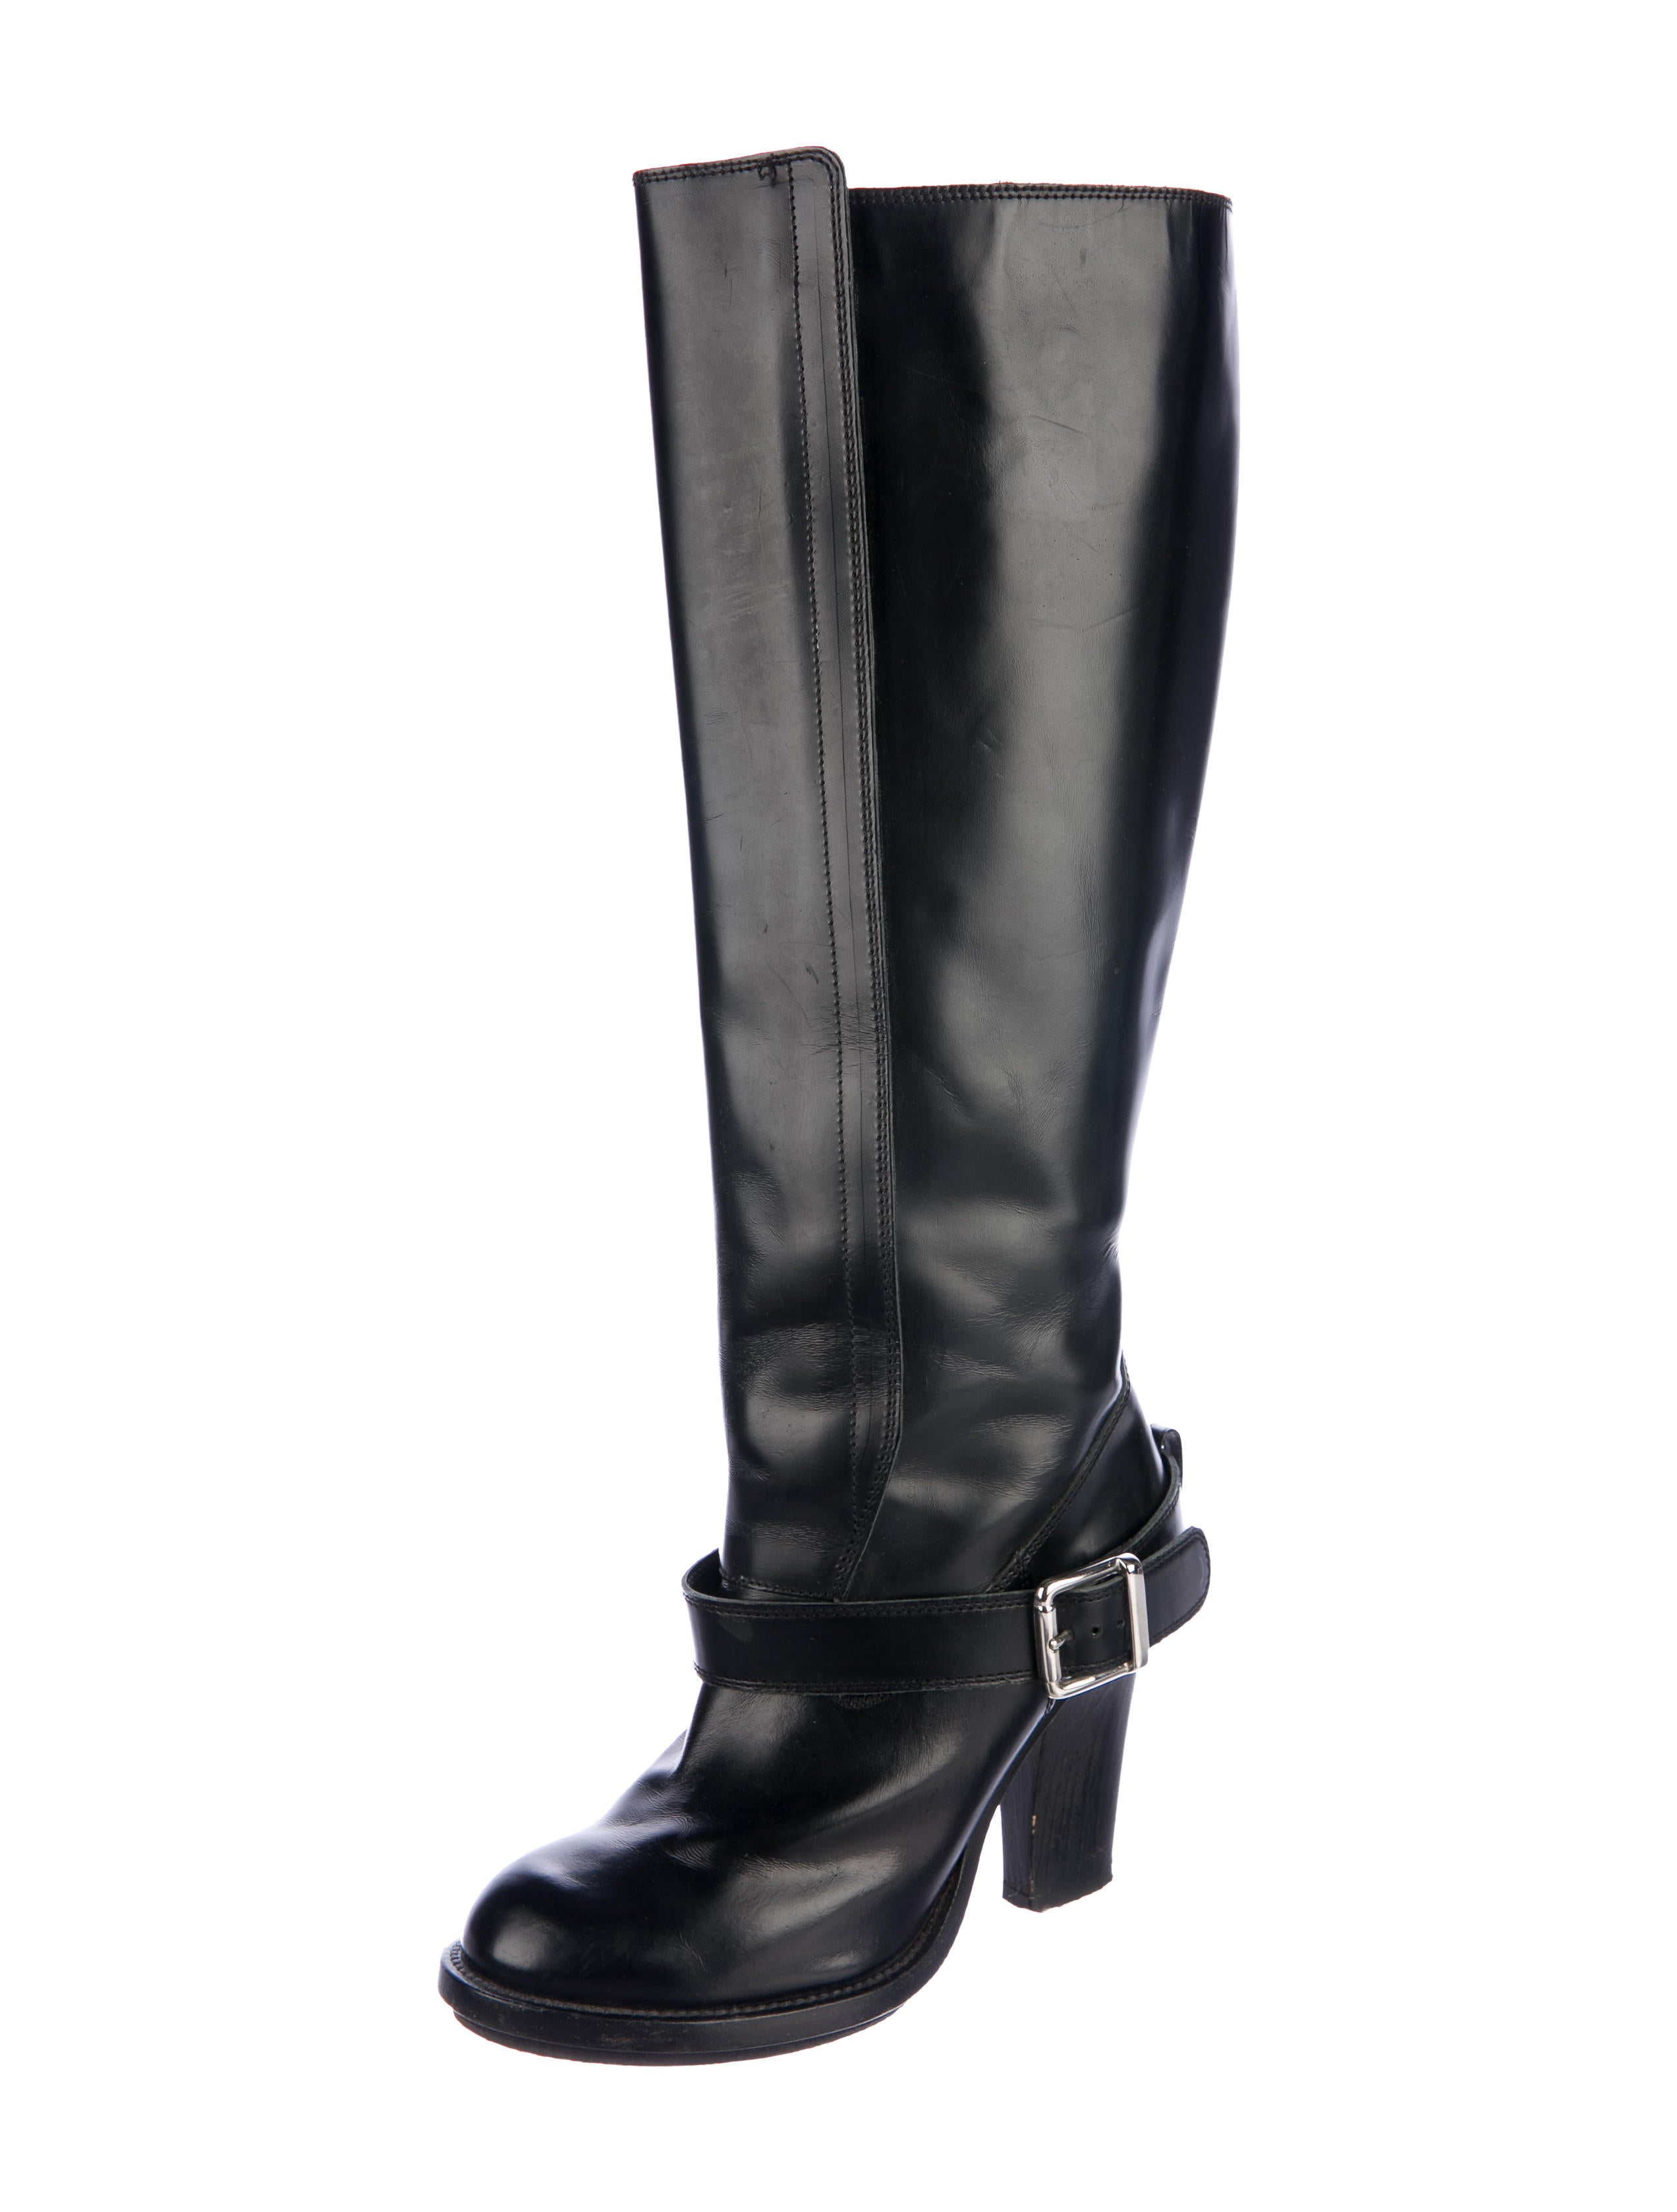 Chloé Leather Round-Toe Knee-High Boots discount with mastercard ZjlEyvf